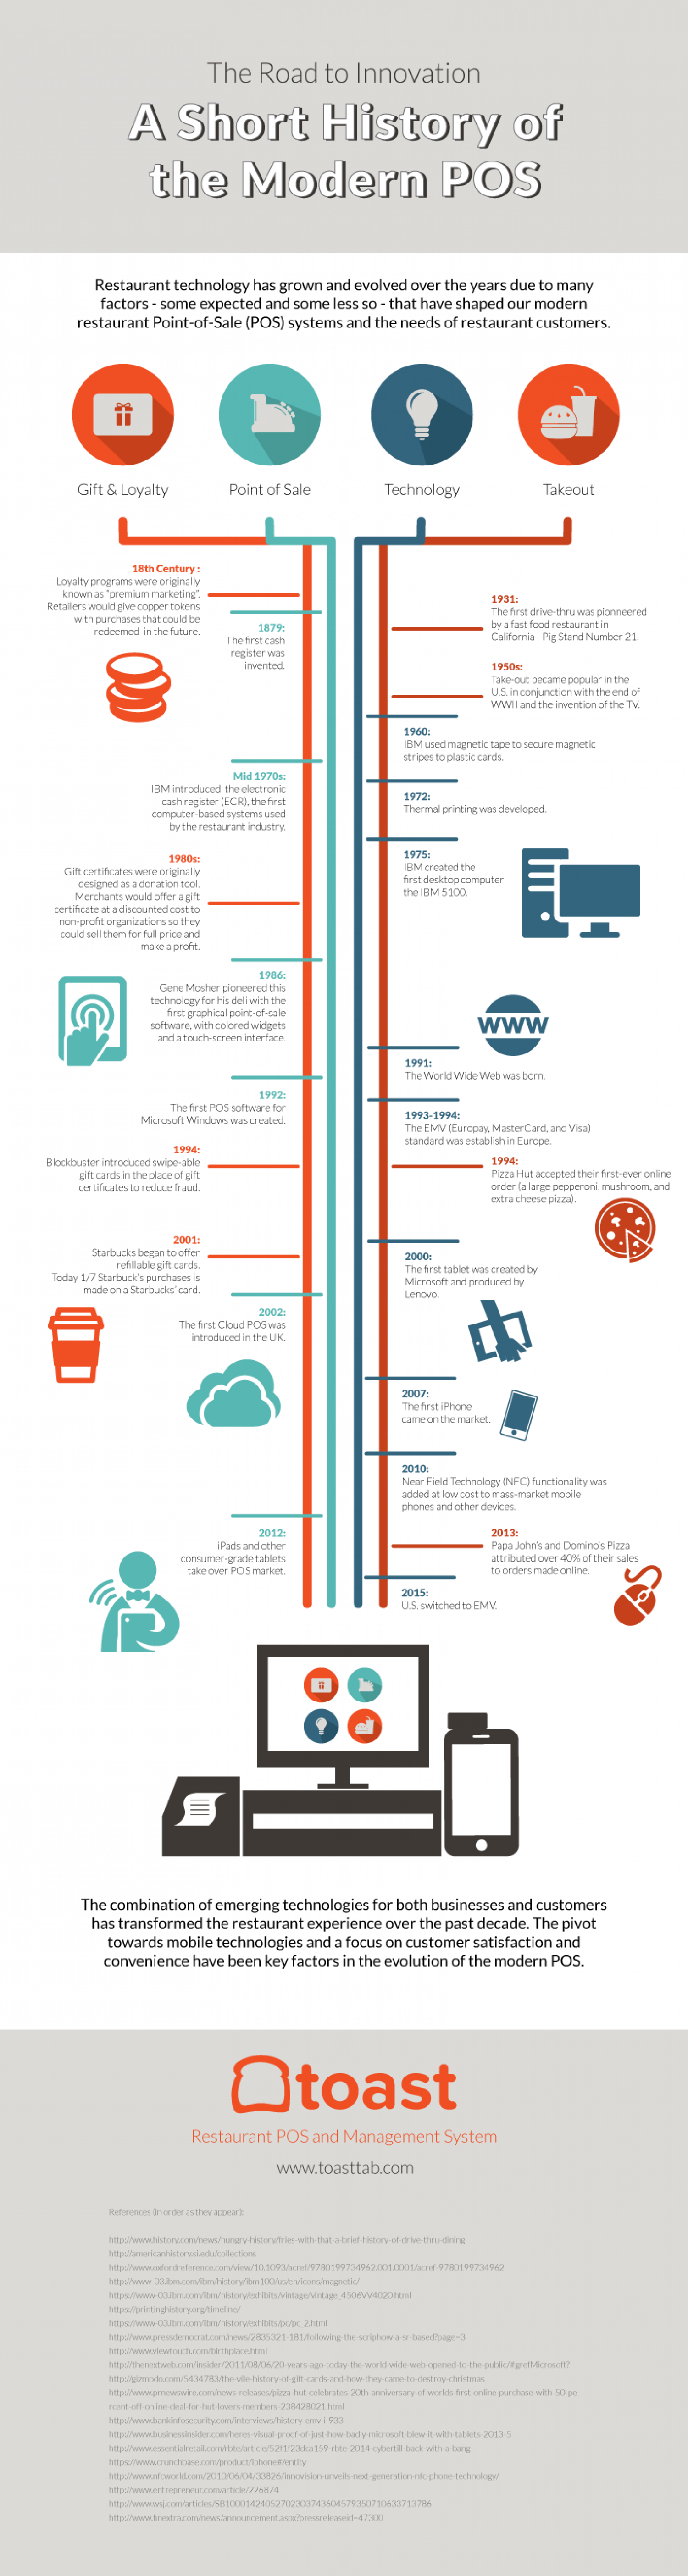 A Road to Innovation: A Short History of the Modern POS Infographic